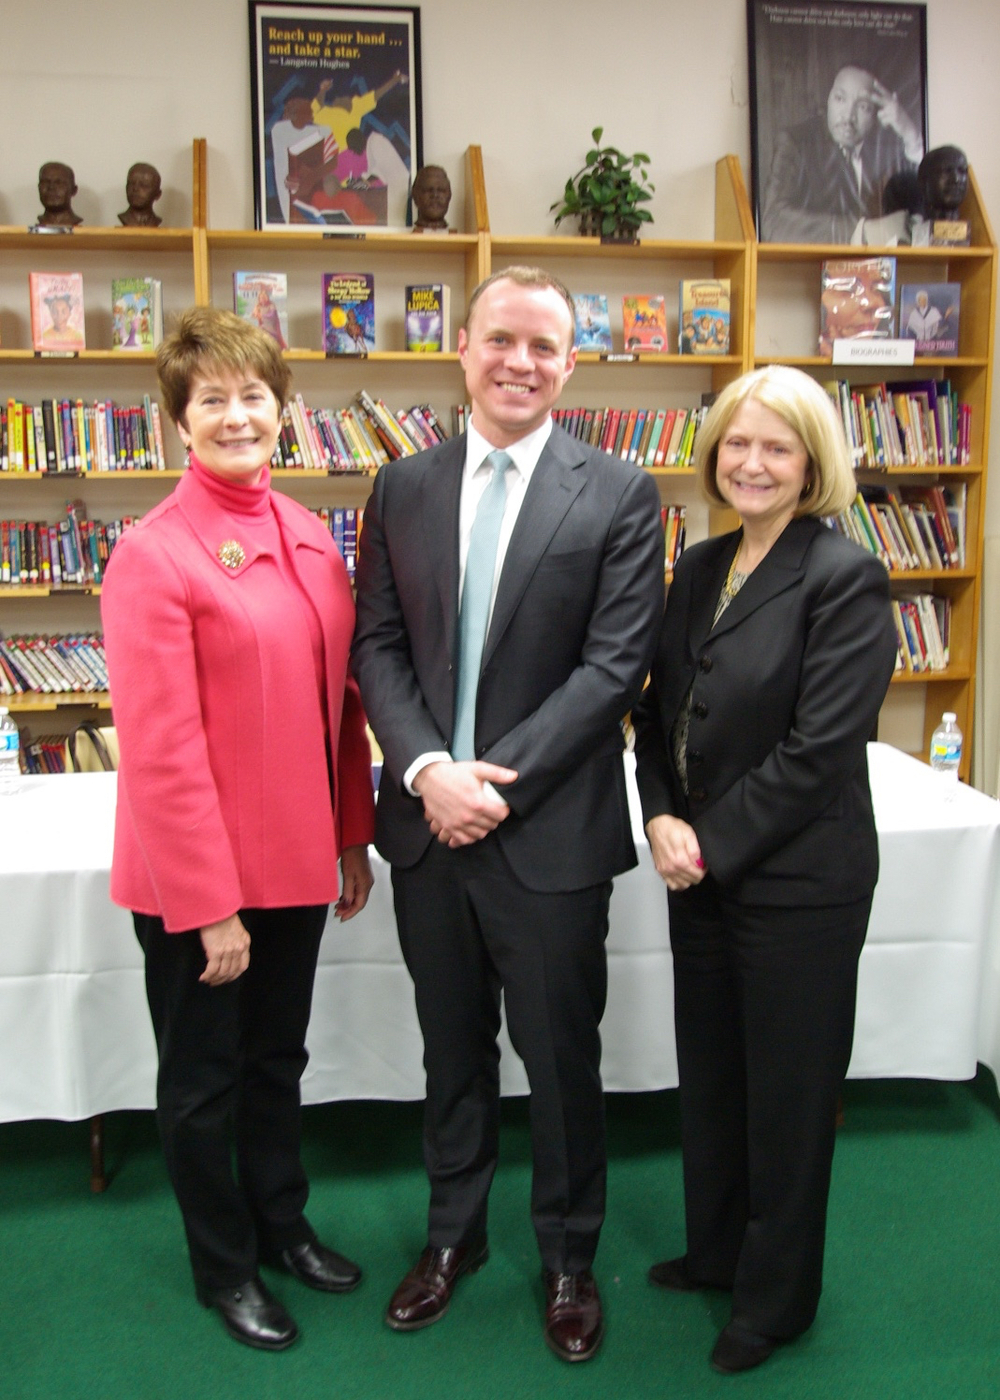 Superintendent of Cincinnati Public Schools Mary Ronan, Accelerate Great Schools CEO Patrick Herrel and Interim Superintendent Susan Gibbons